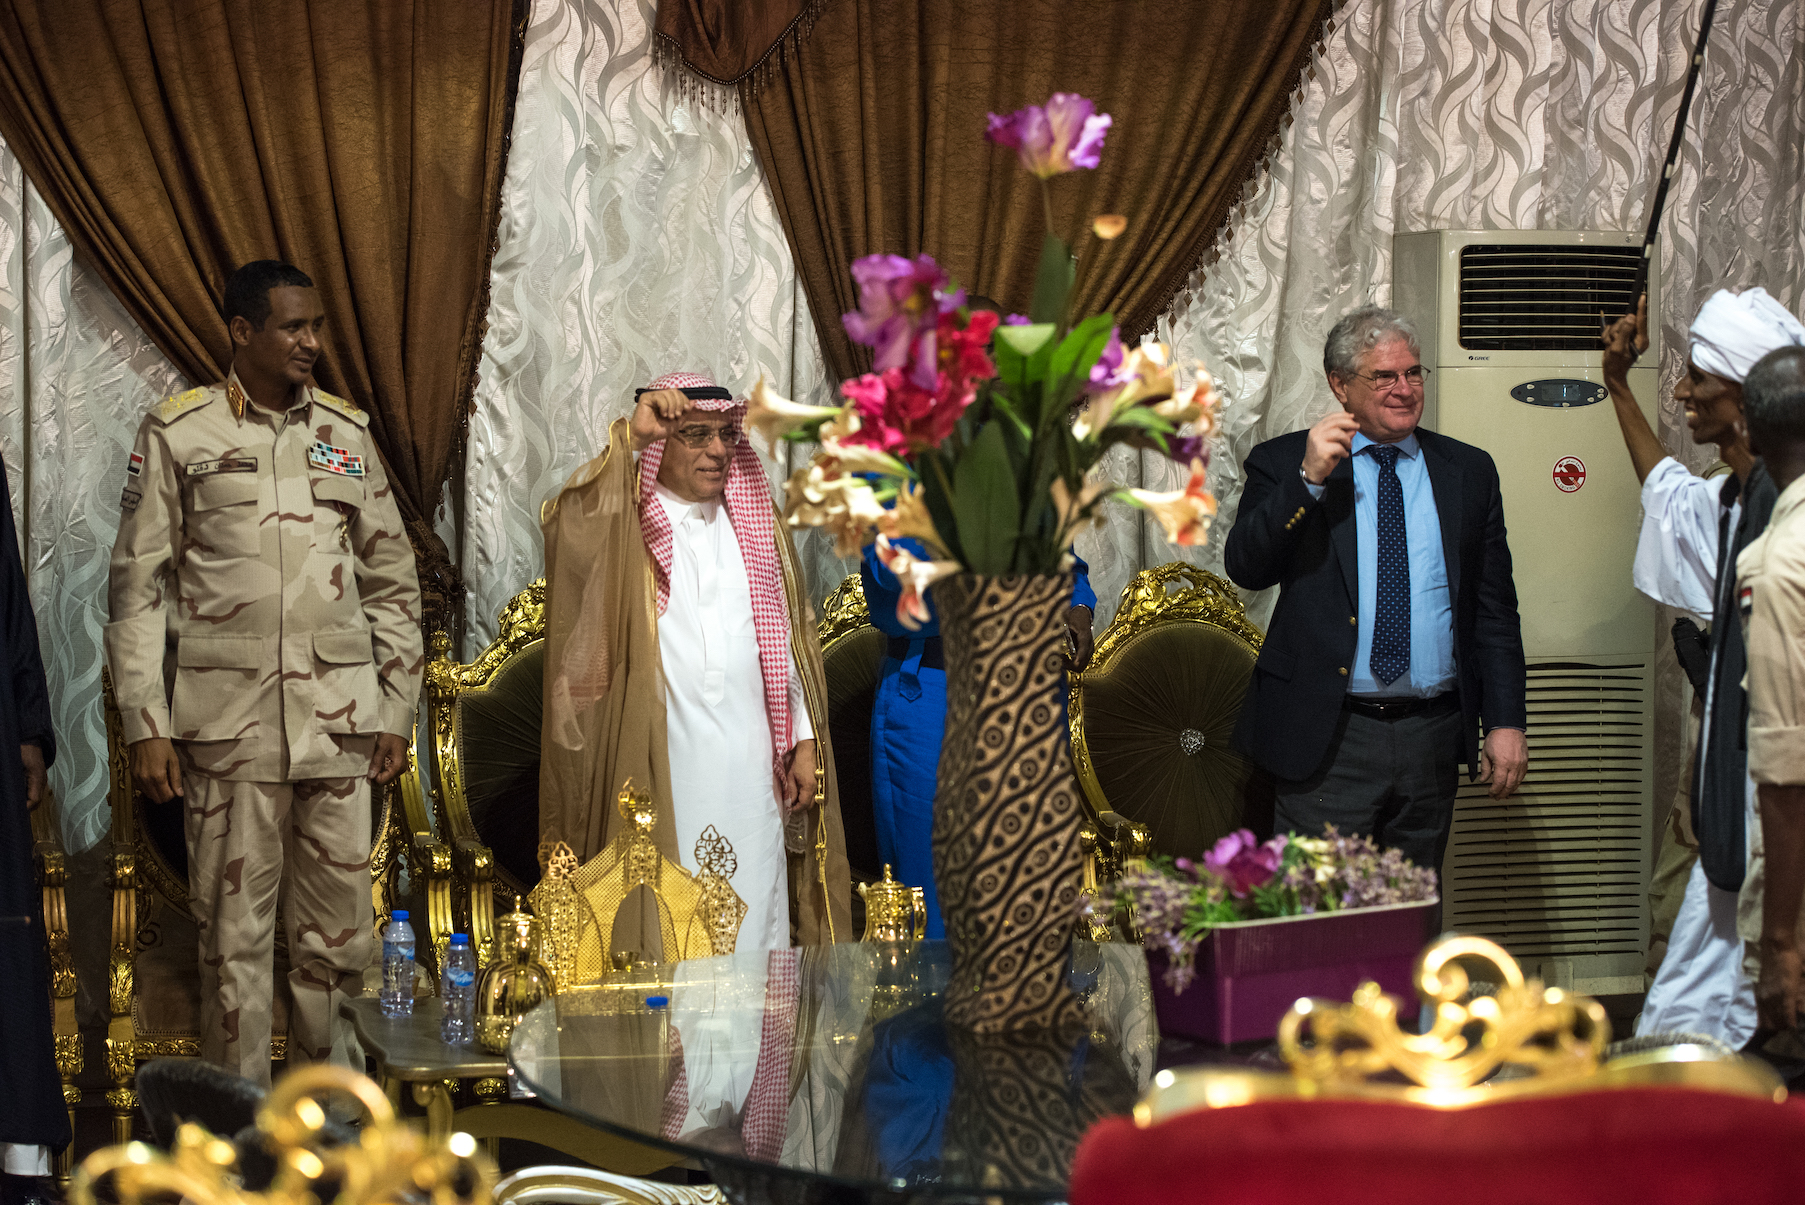 U.S. Charge d'Affaires to Sudan Steven Koutsis (right, in suit) snaps his fingers to music as guests gather for a dinner honoring militia commander Mohamed Hamdan Dagolo (far left). Also pictured is Saudi Ambassador to Sudan Sheikh Abdullah al Malhou...